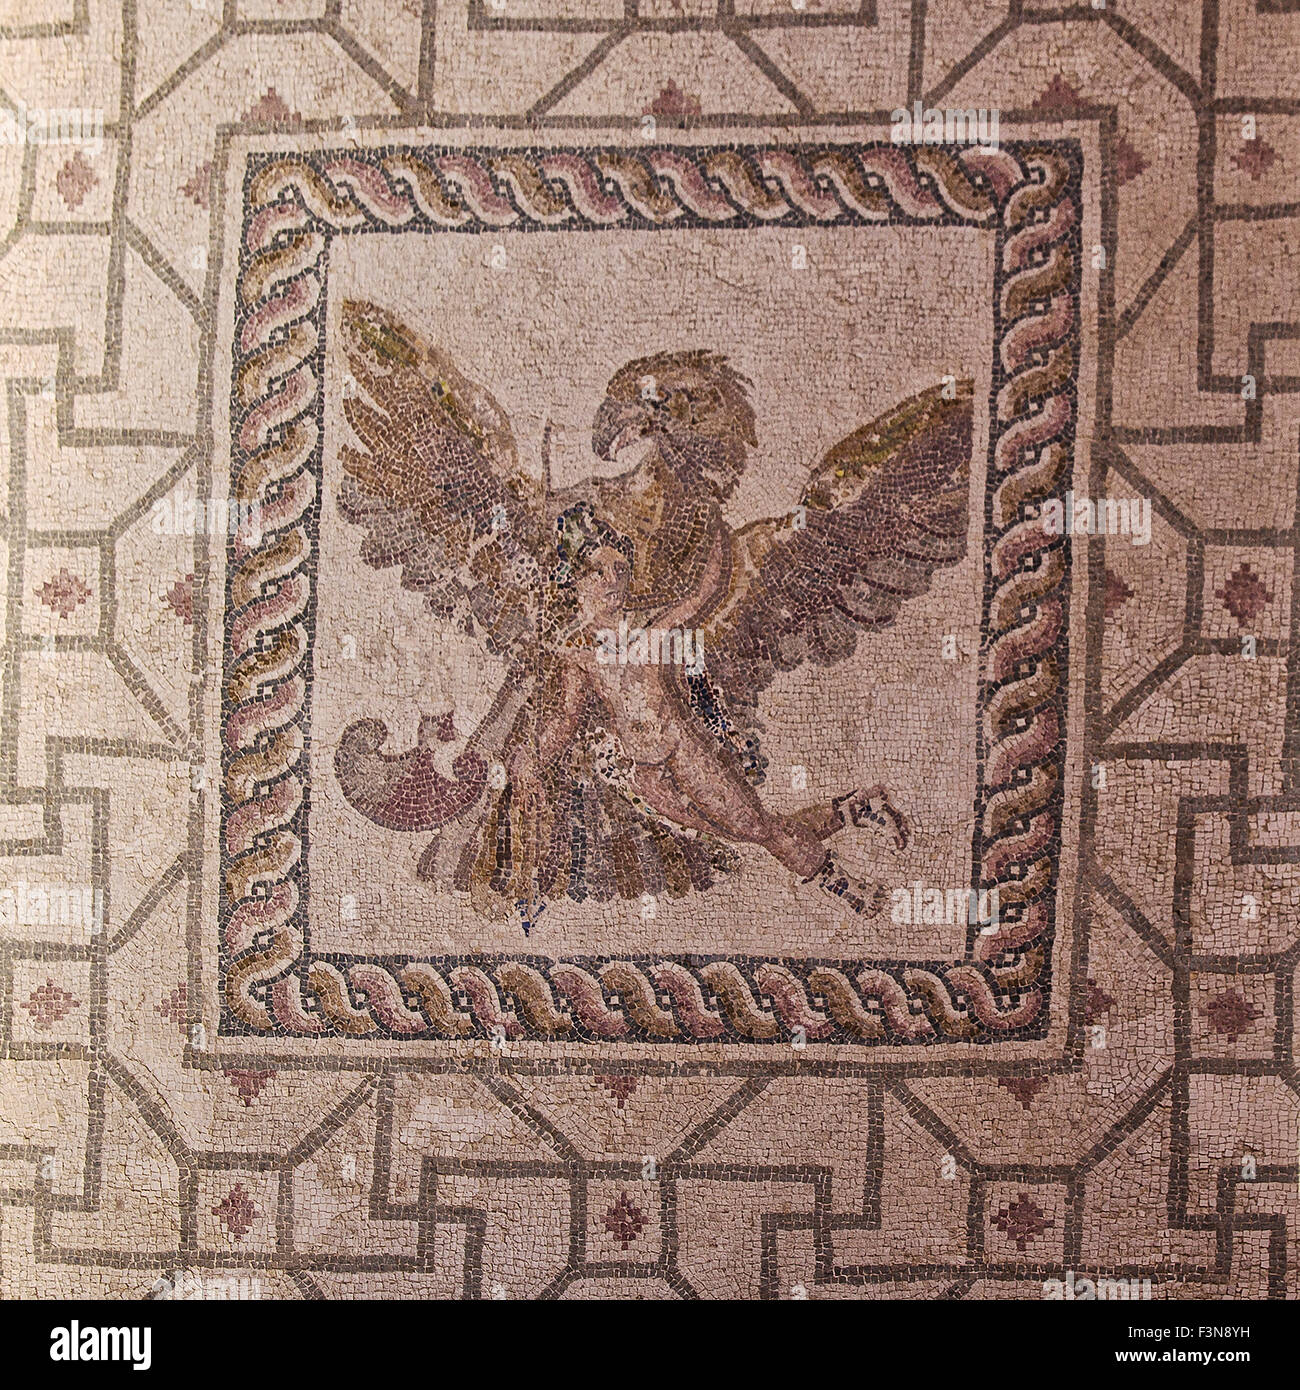 The mosaic of Zeus abducting Ganymede in the House of Dionysos in the Paphos Archaeological Park in Cyprus - Stock Image